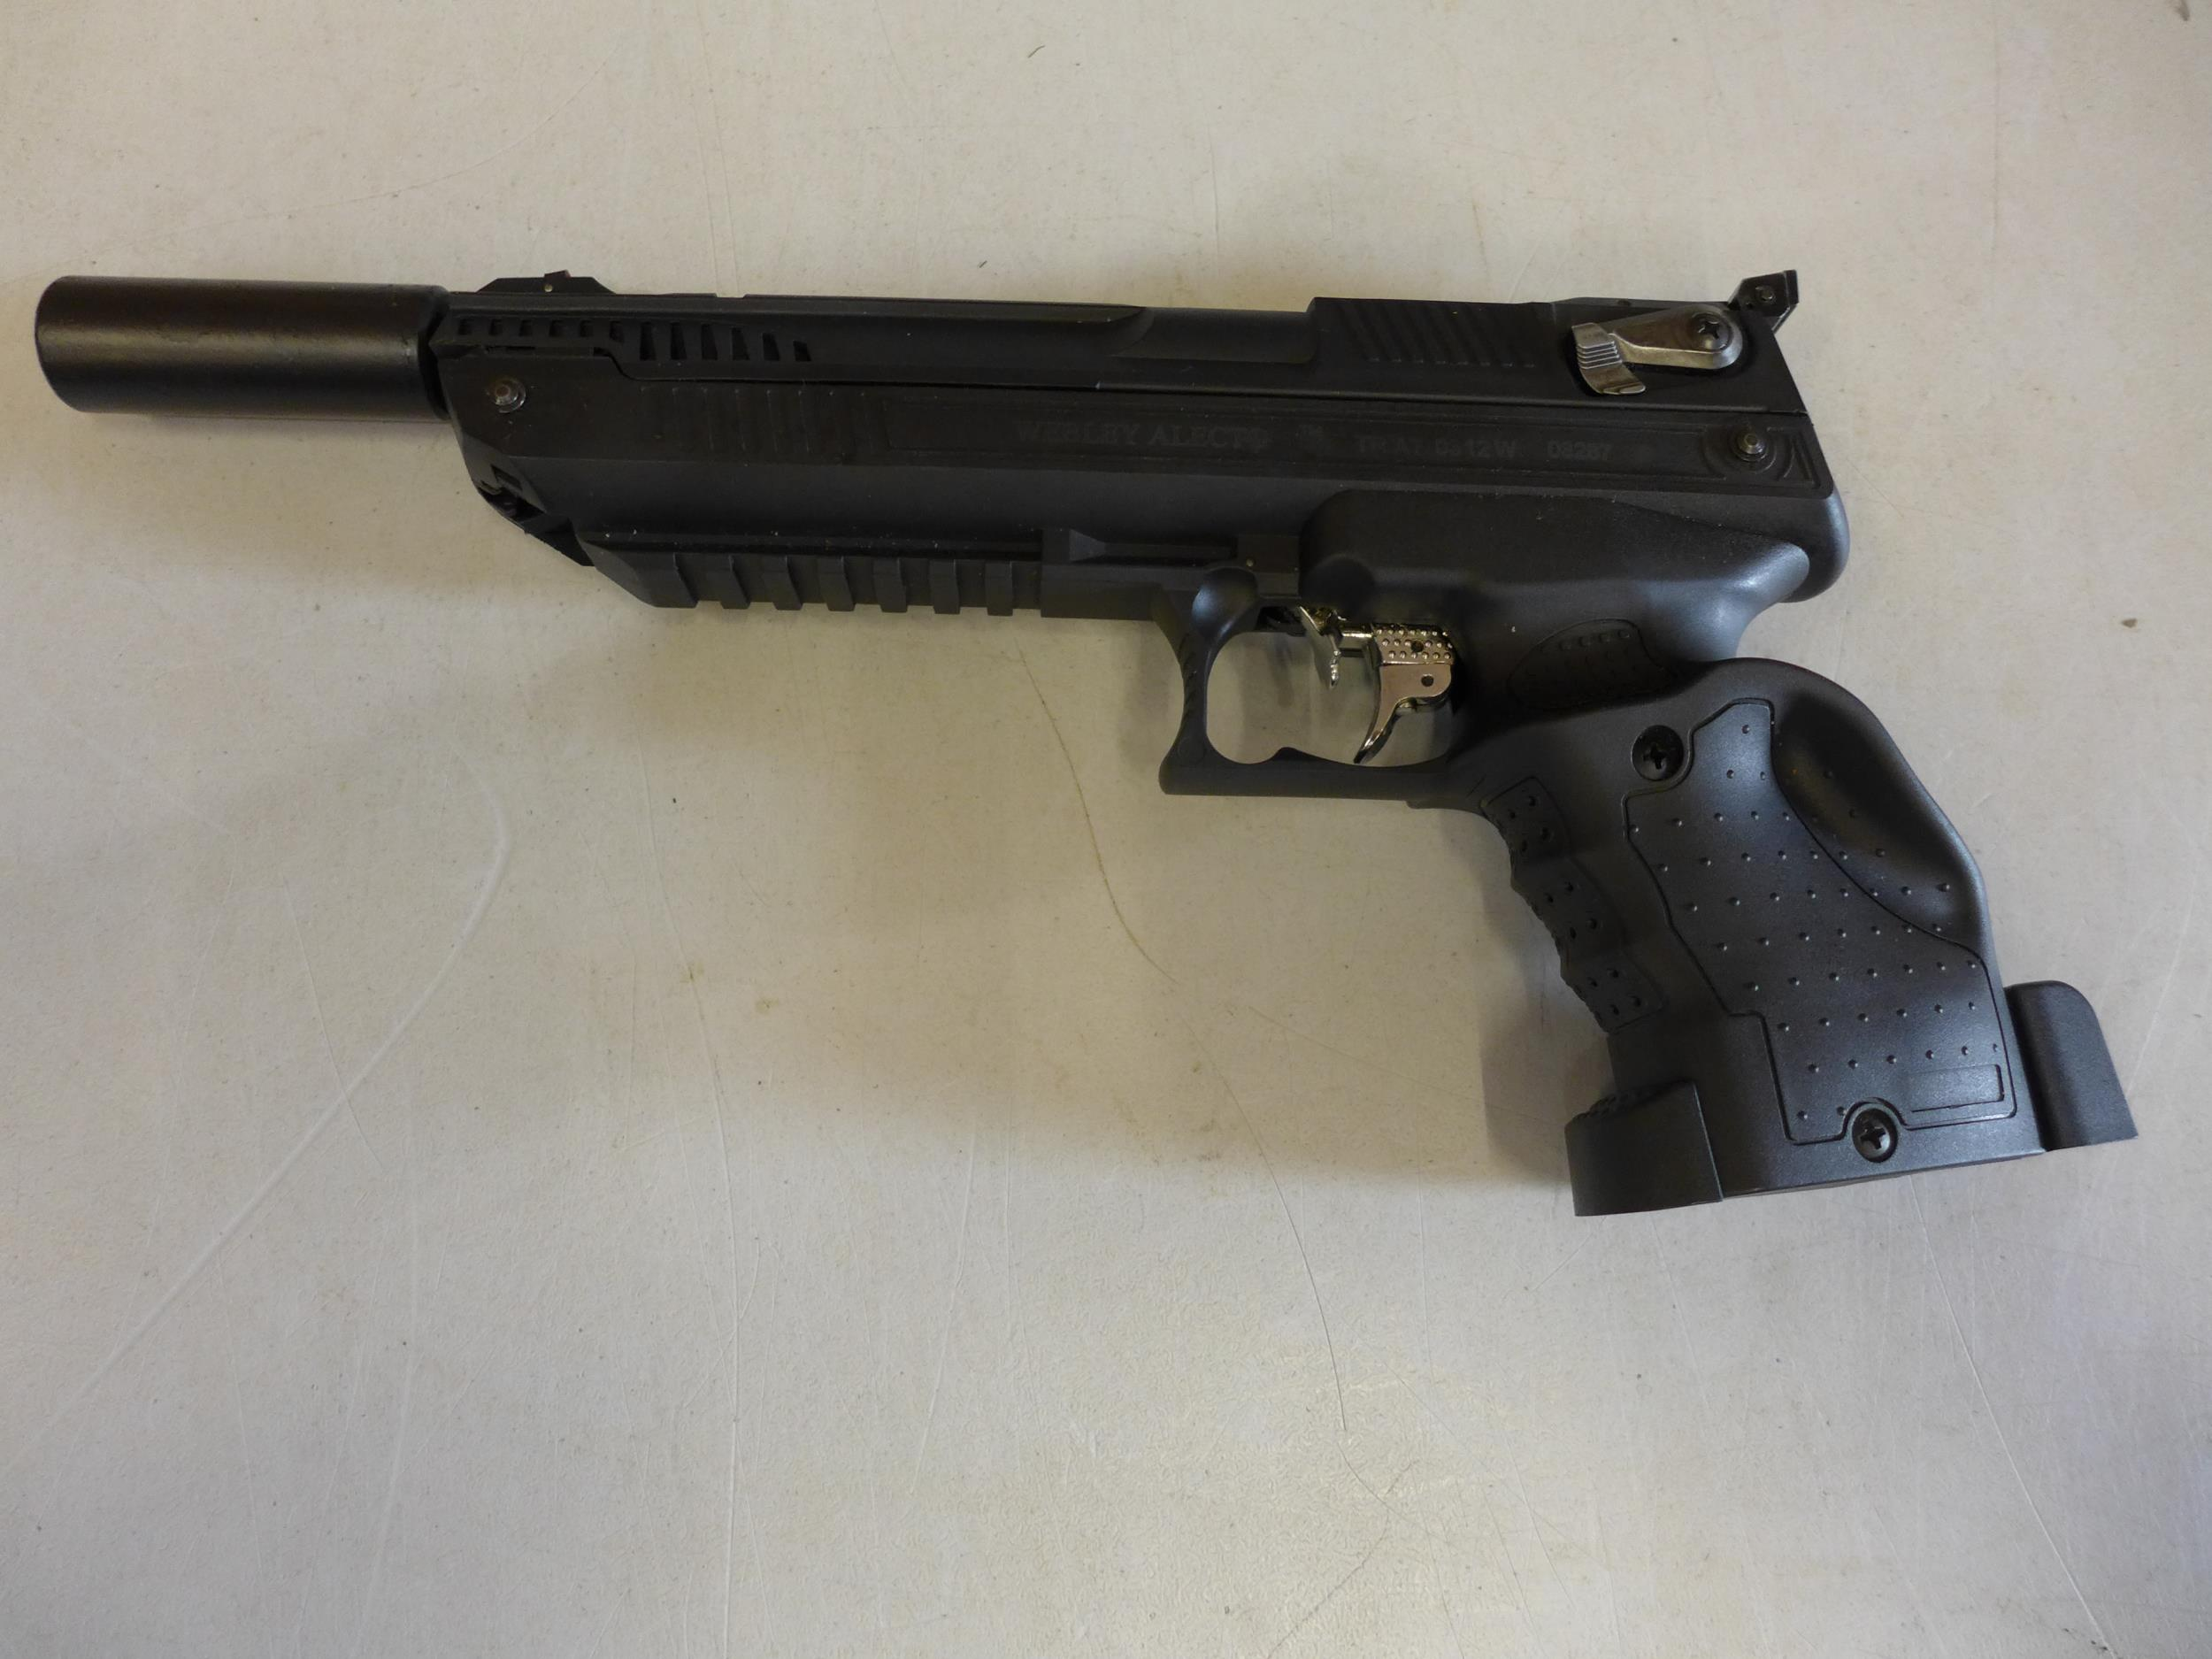 A CASED WEBLEY ALECT .177 CALIBRE AIR PISTOL, WITH SCREW ON SILENCER AND A TIN OF PELLETS - Image 2 of 4